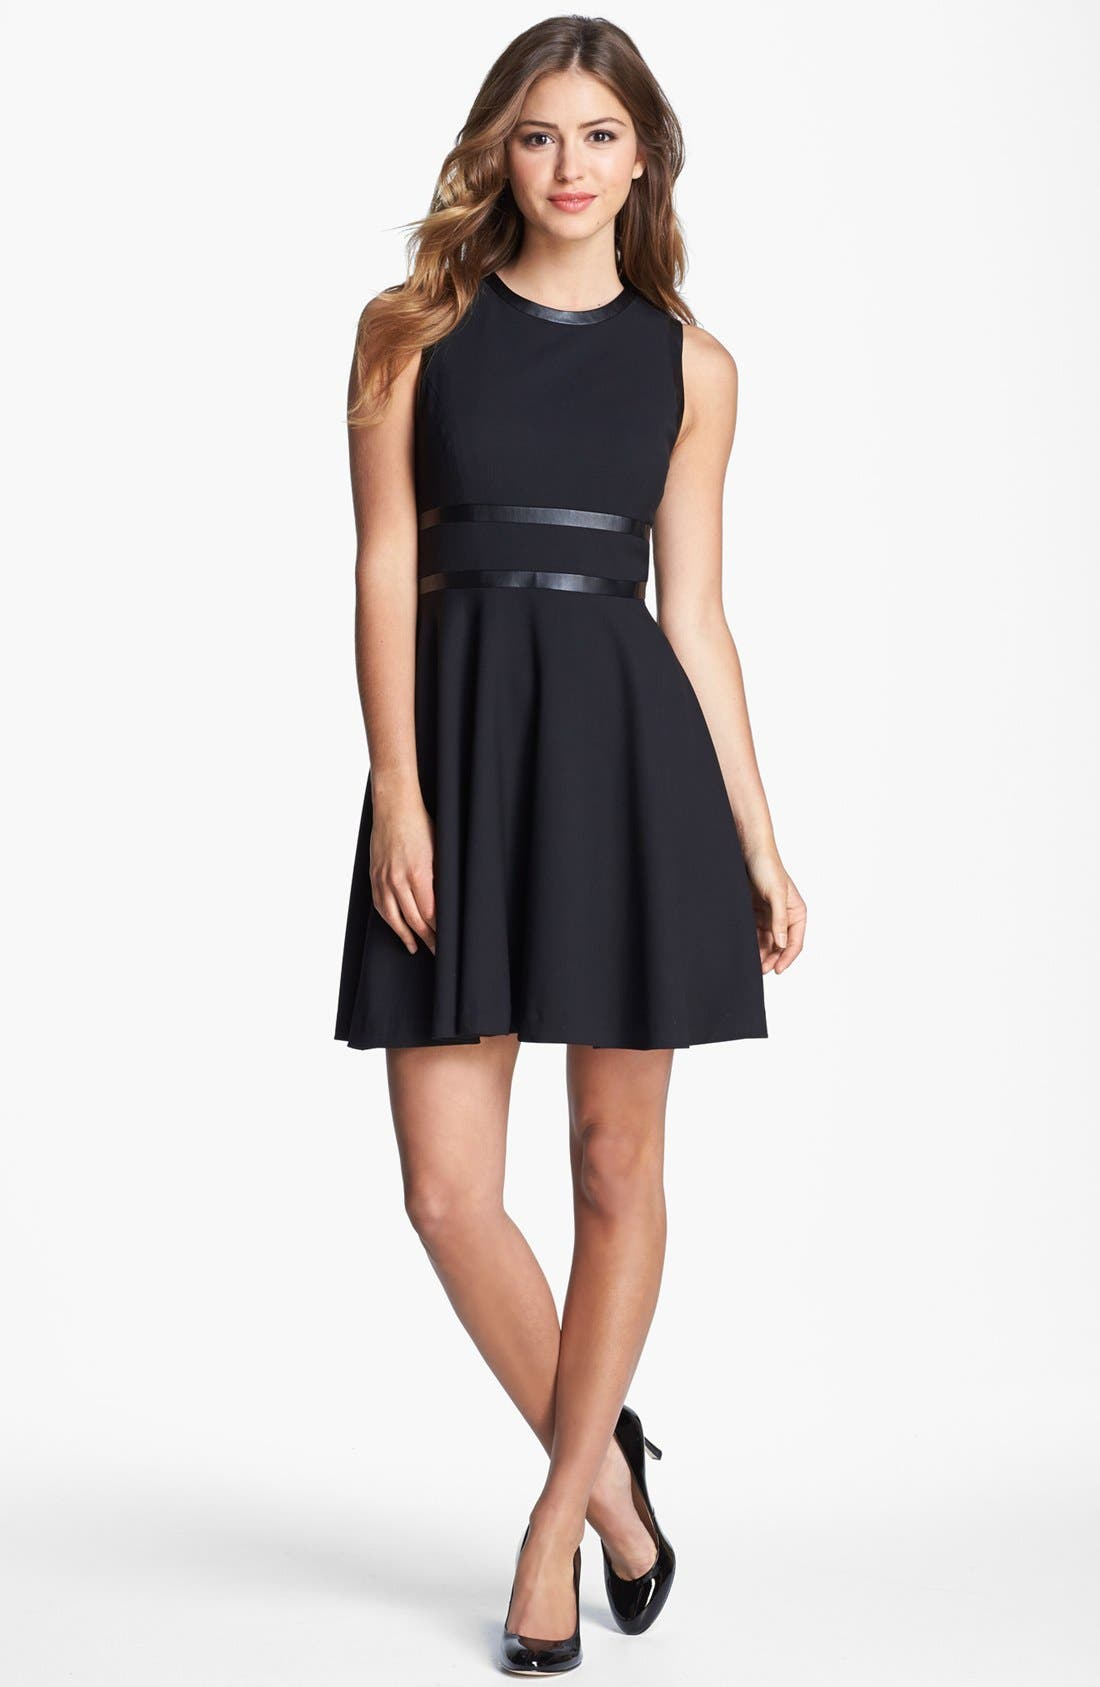 Main Image - Cynthia Steffe Faux Leather Trim Fit & Flare Dress